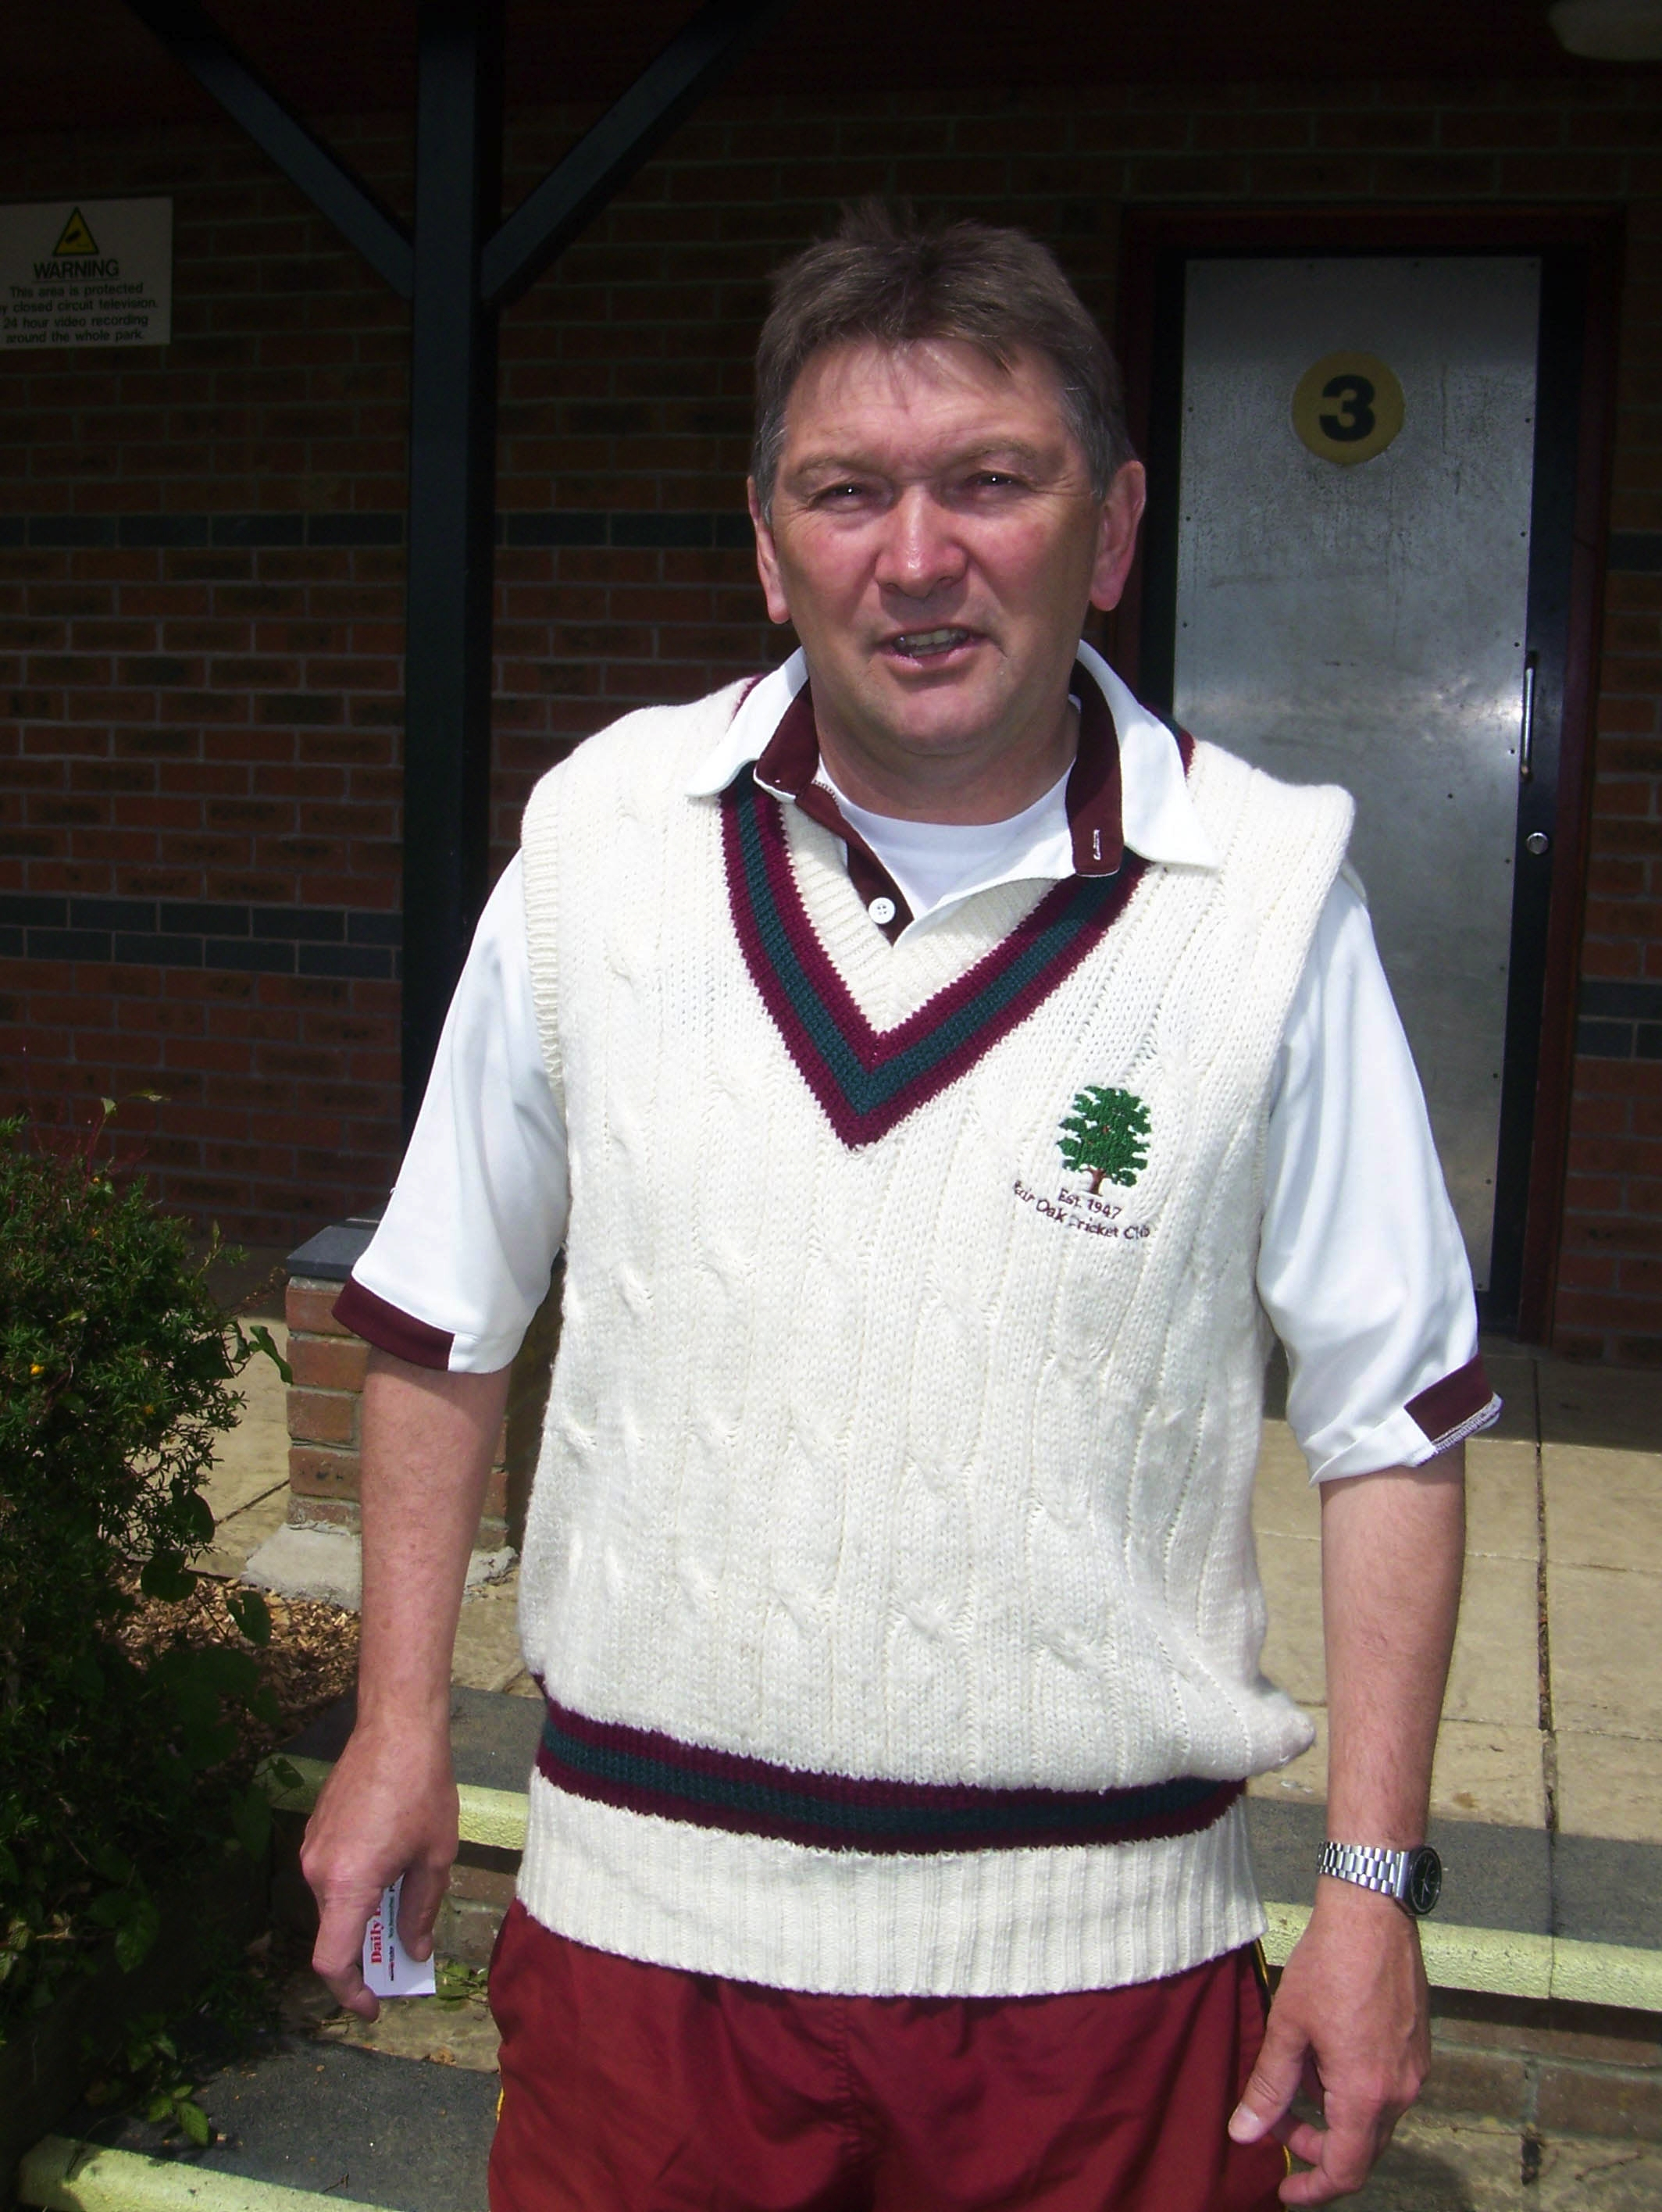 Tony Oxley, Fair Oak CC chairman and Hampshire Cricket Board non-executive director